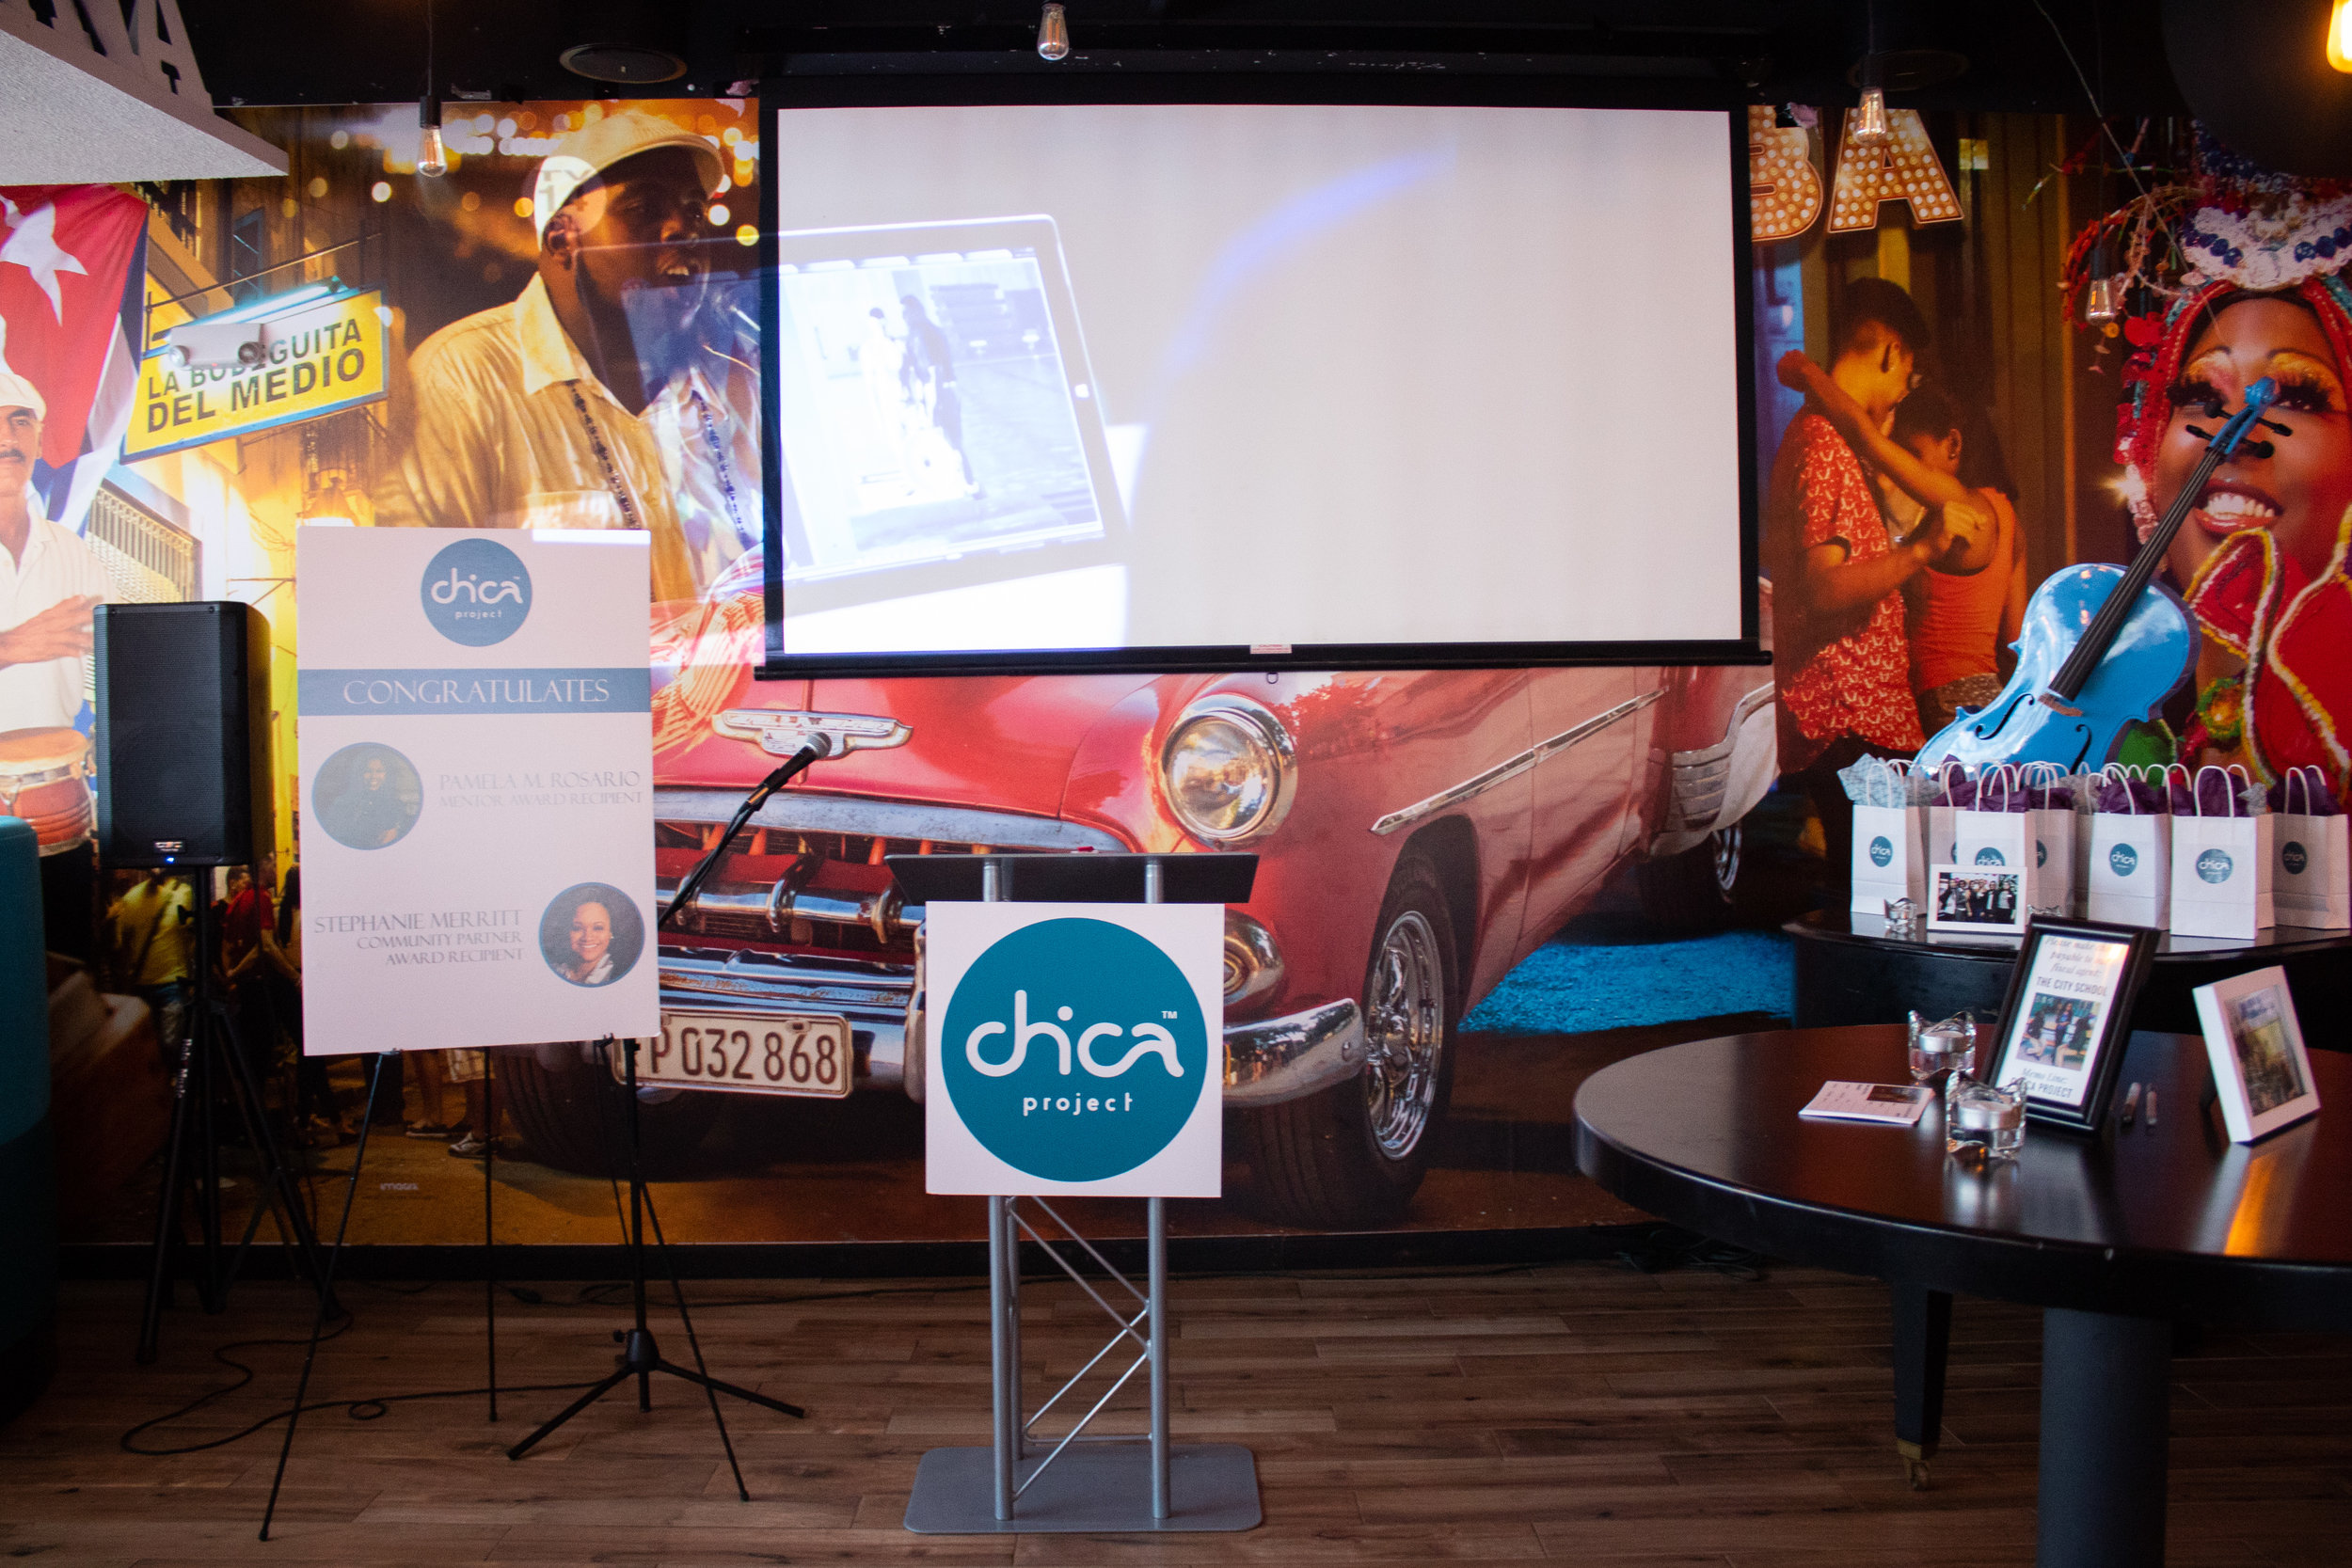 The 7th annual Power of One Fundraiser took place at Dona Habana Restaurant.